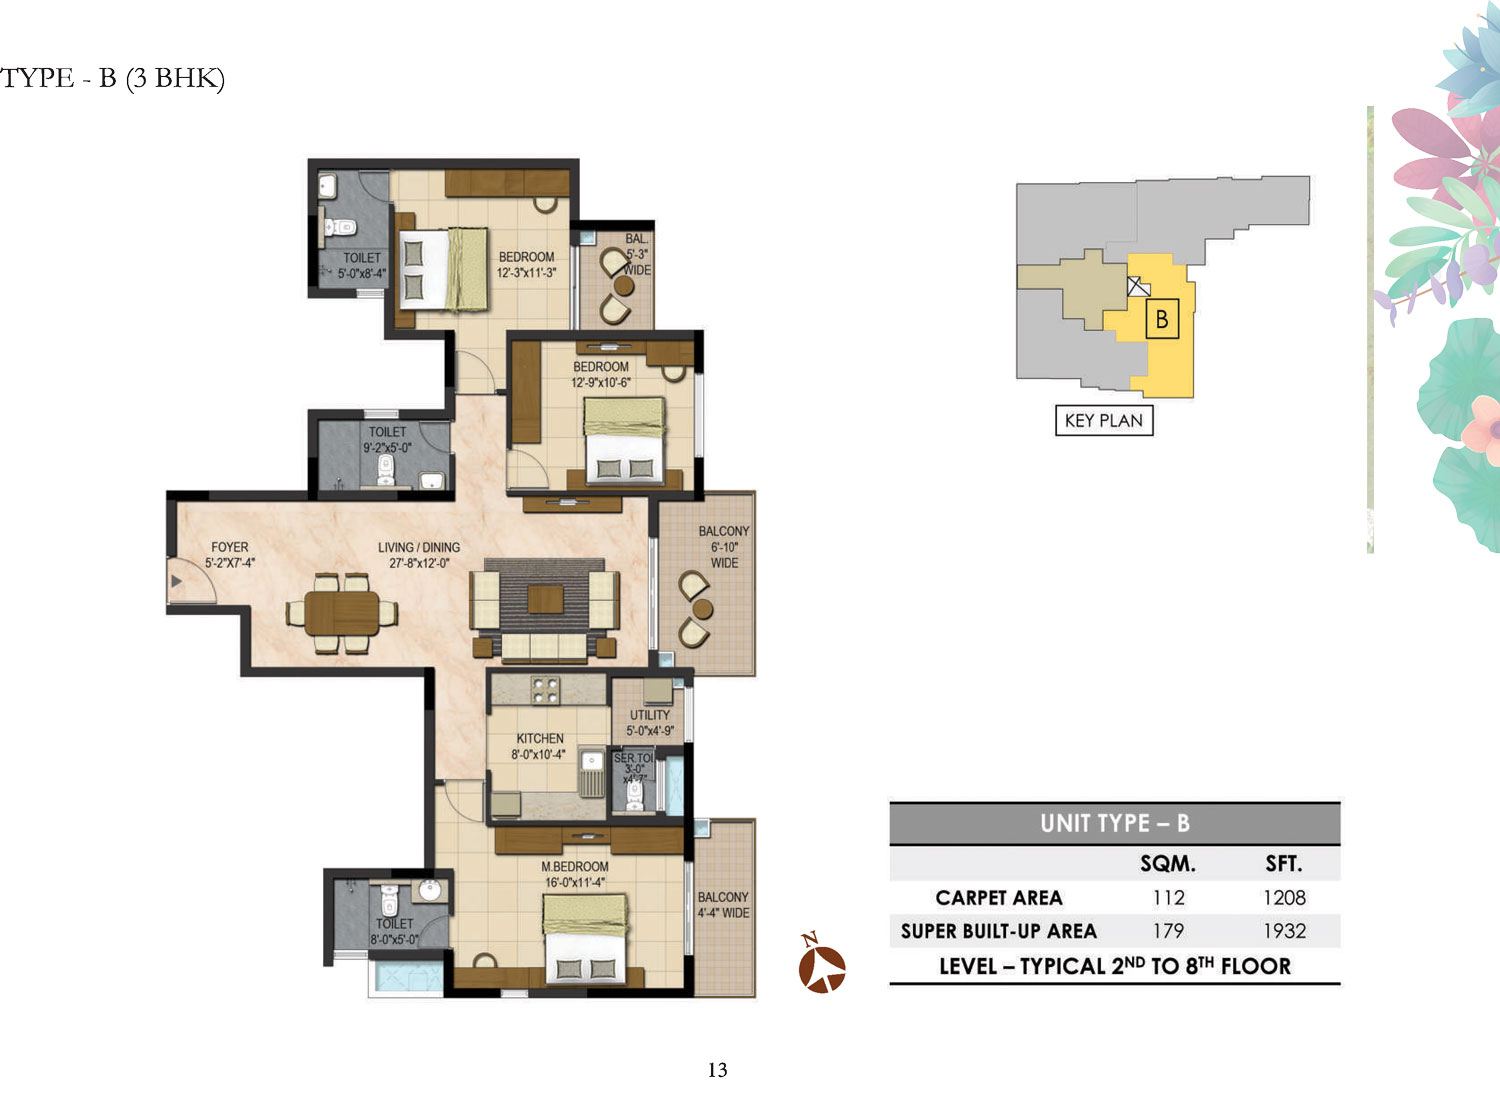 Type B - 3 Bed - 1932 Sq Ft